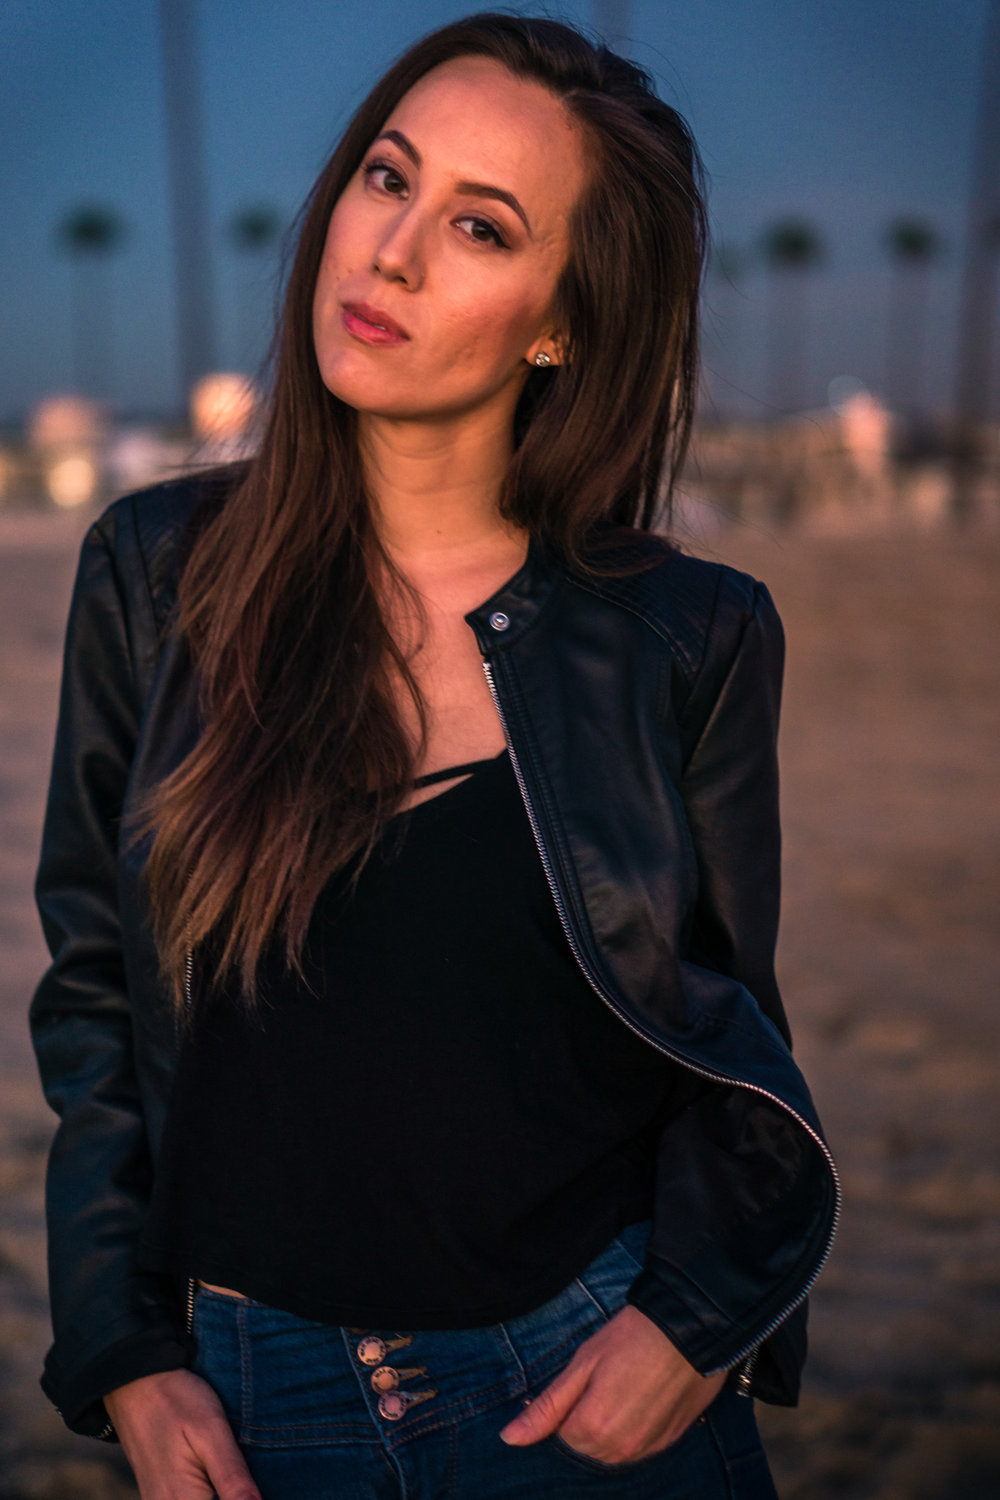 vibrant Natural light Fashion Portrait of woman posing in black leather jacket and blue jeans walking on beach during Golden hour At Balboa Pier in Newport Beach